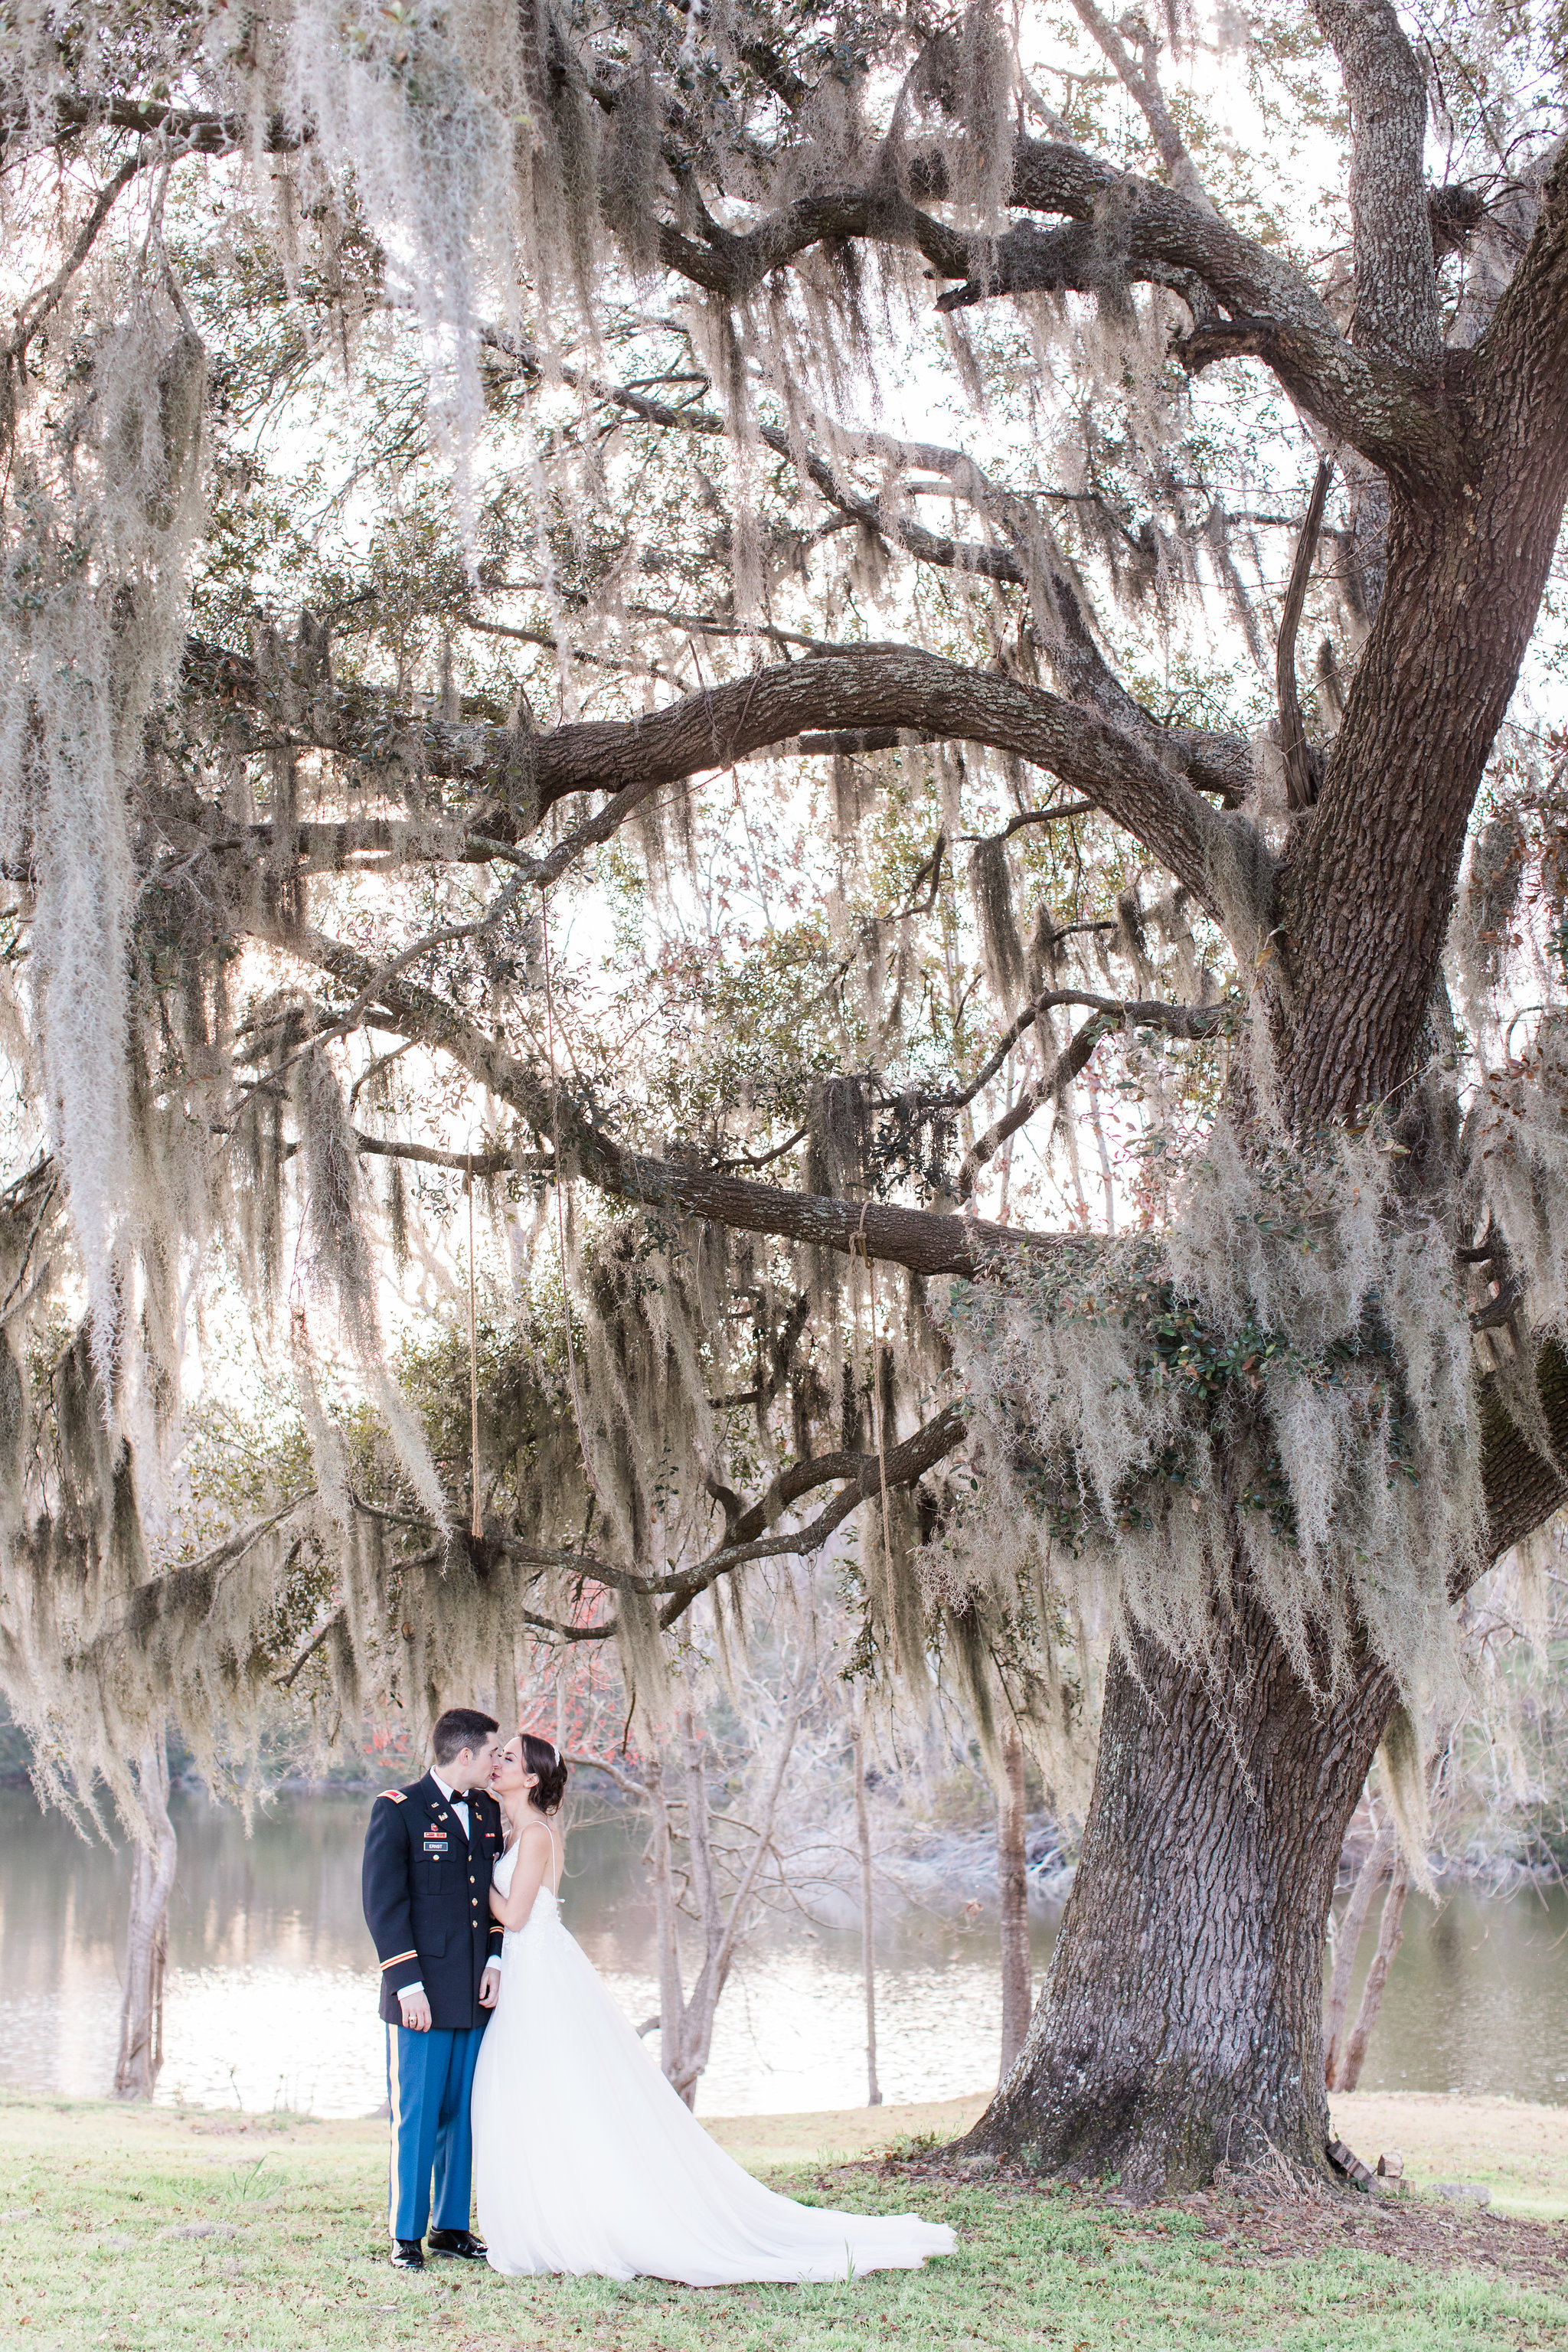 Andrea-brad-apt-b-photography-savannah-wedding-savannah-wedding-photographer-red-gate-barn-wedding-army-wedding-military-wedding-historic-savannah-barn-rustic-wedding-17.JPG